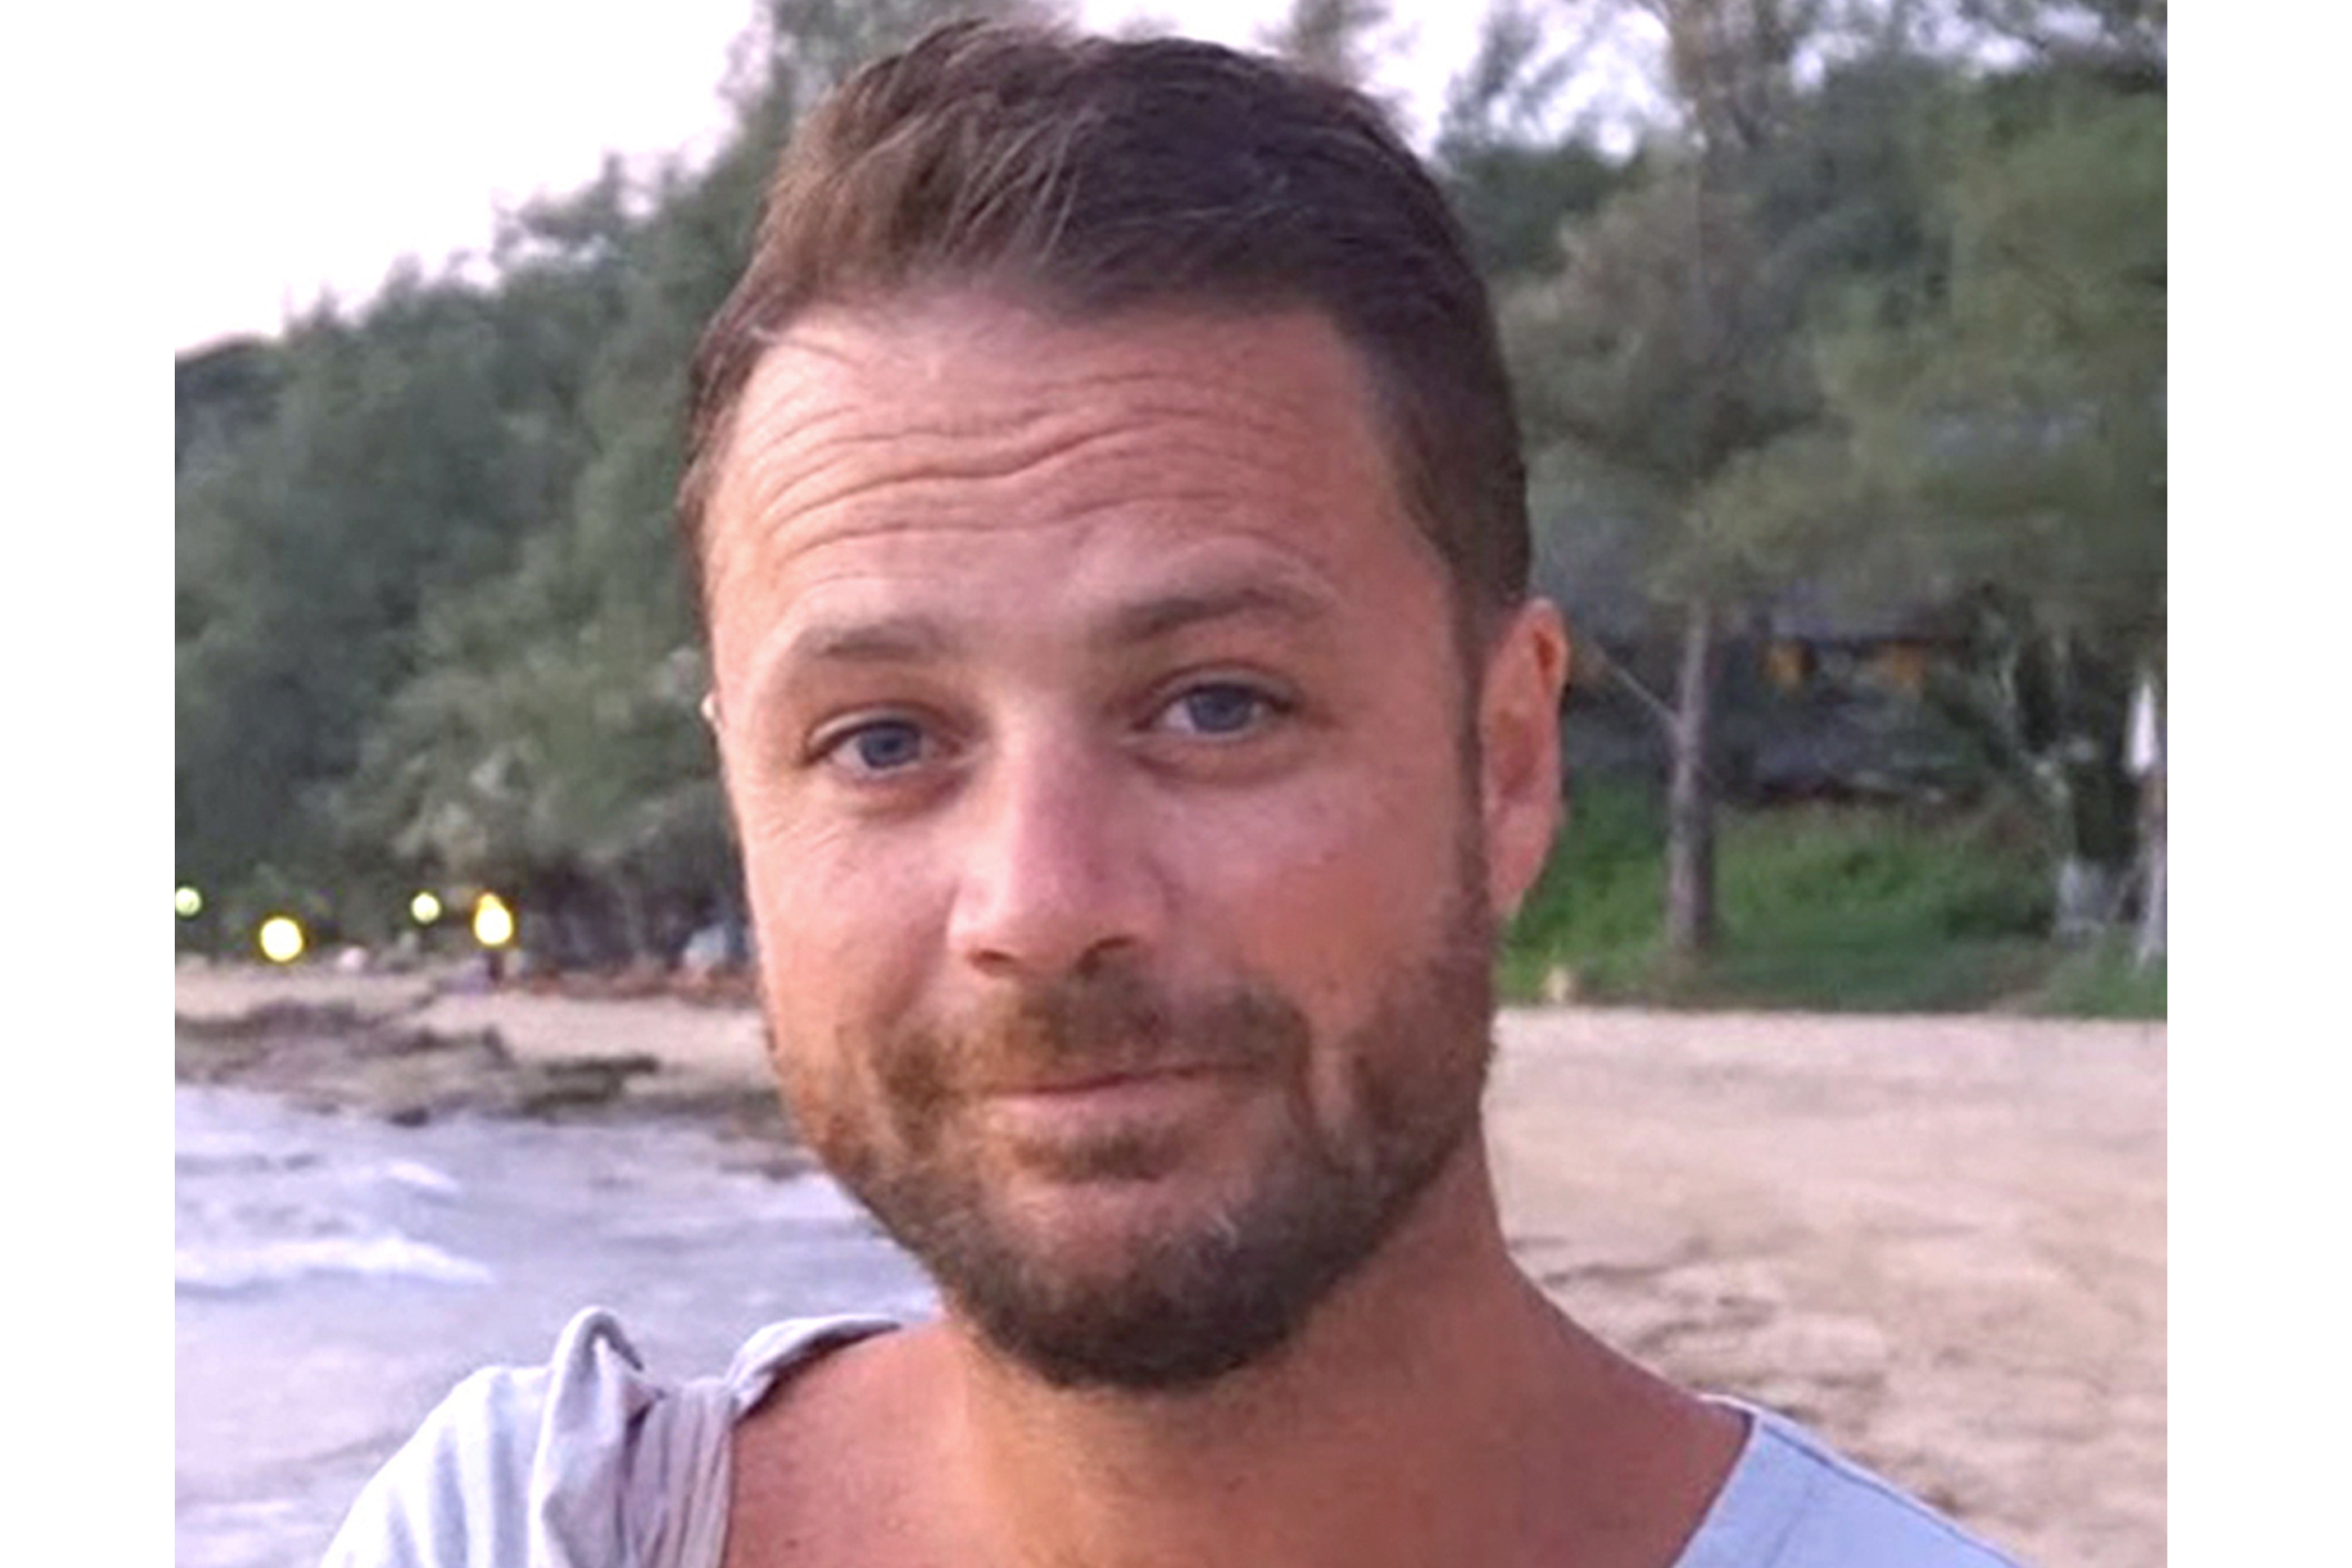 In this undated image released Sunday April 9, 2017, by the British Foreign And Commonwealth Office, of British man Chris Bevington who is confirmed among the dead in the recent Stockholm truck attack.